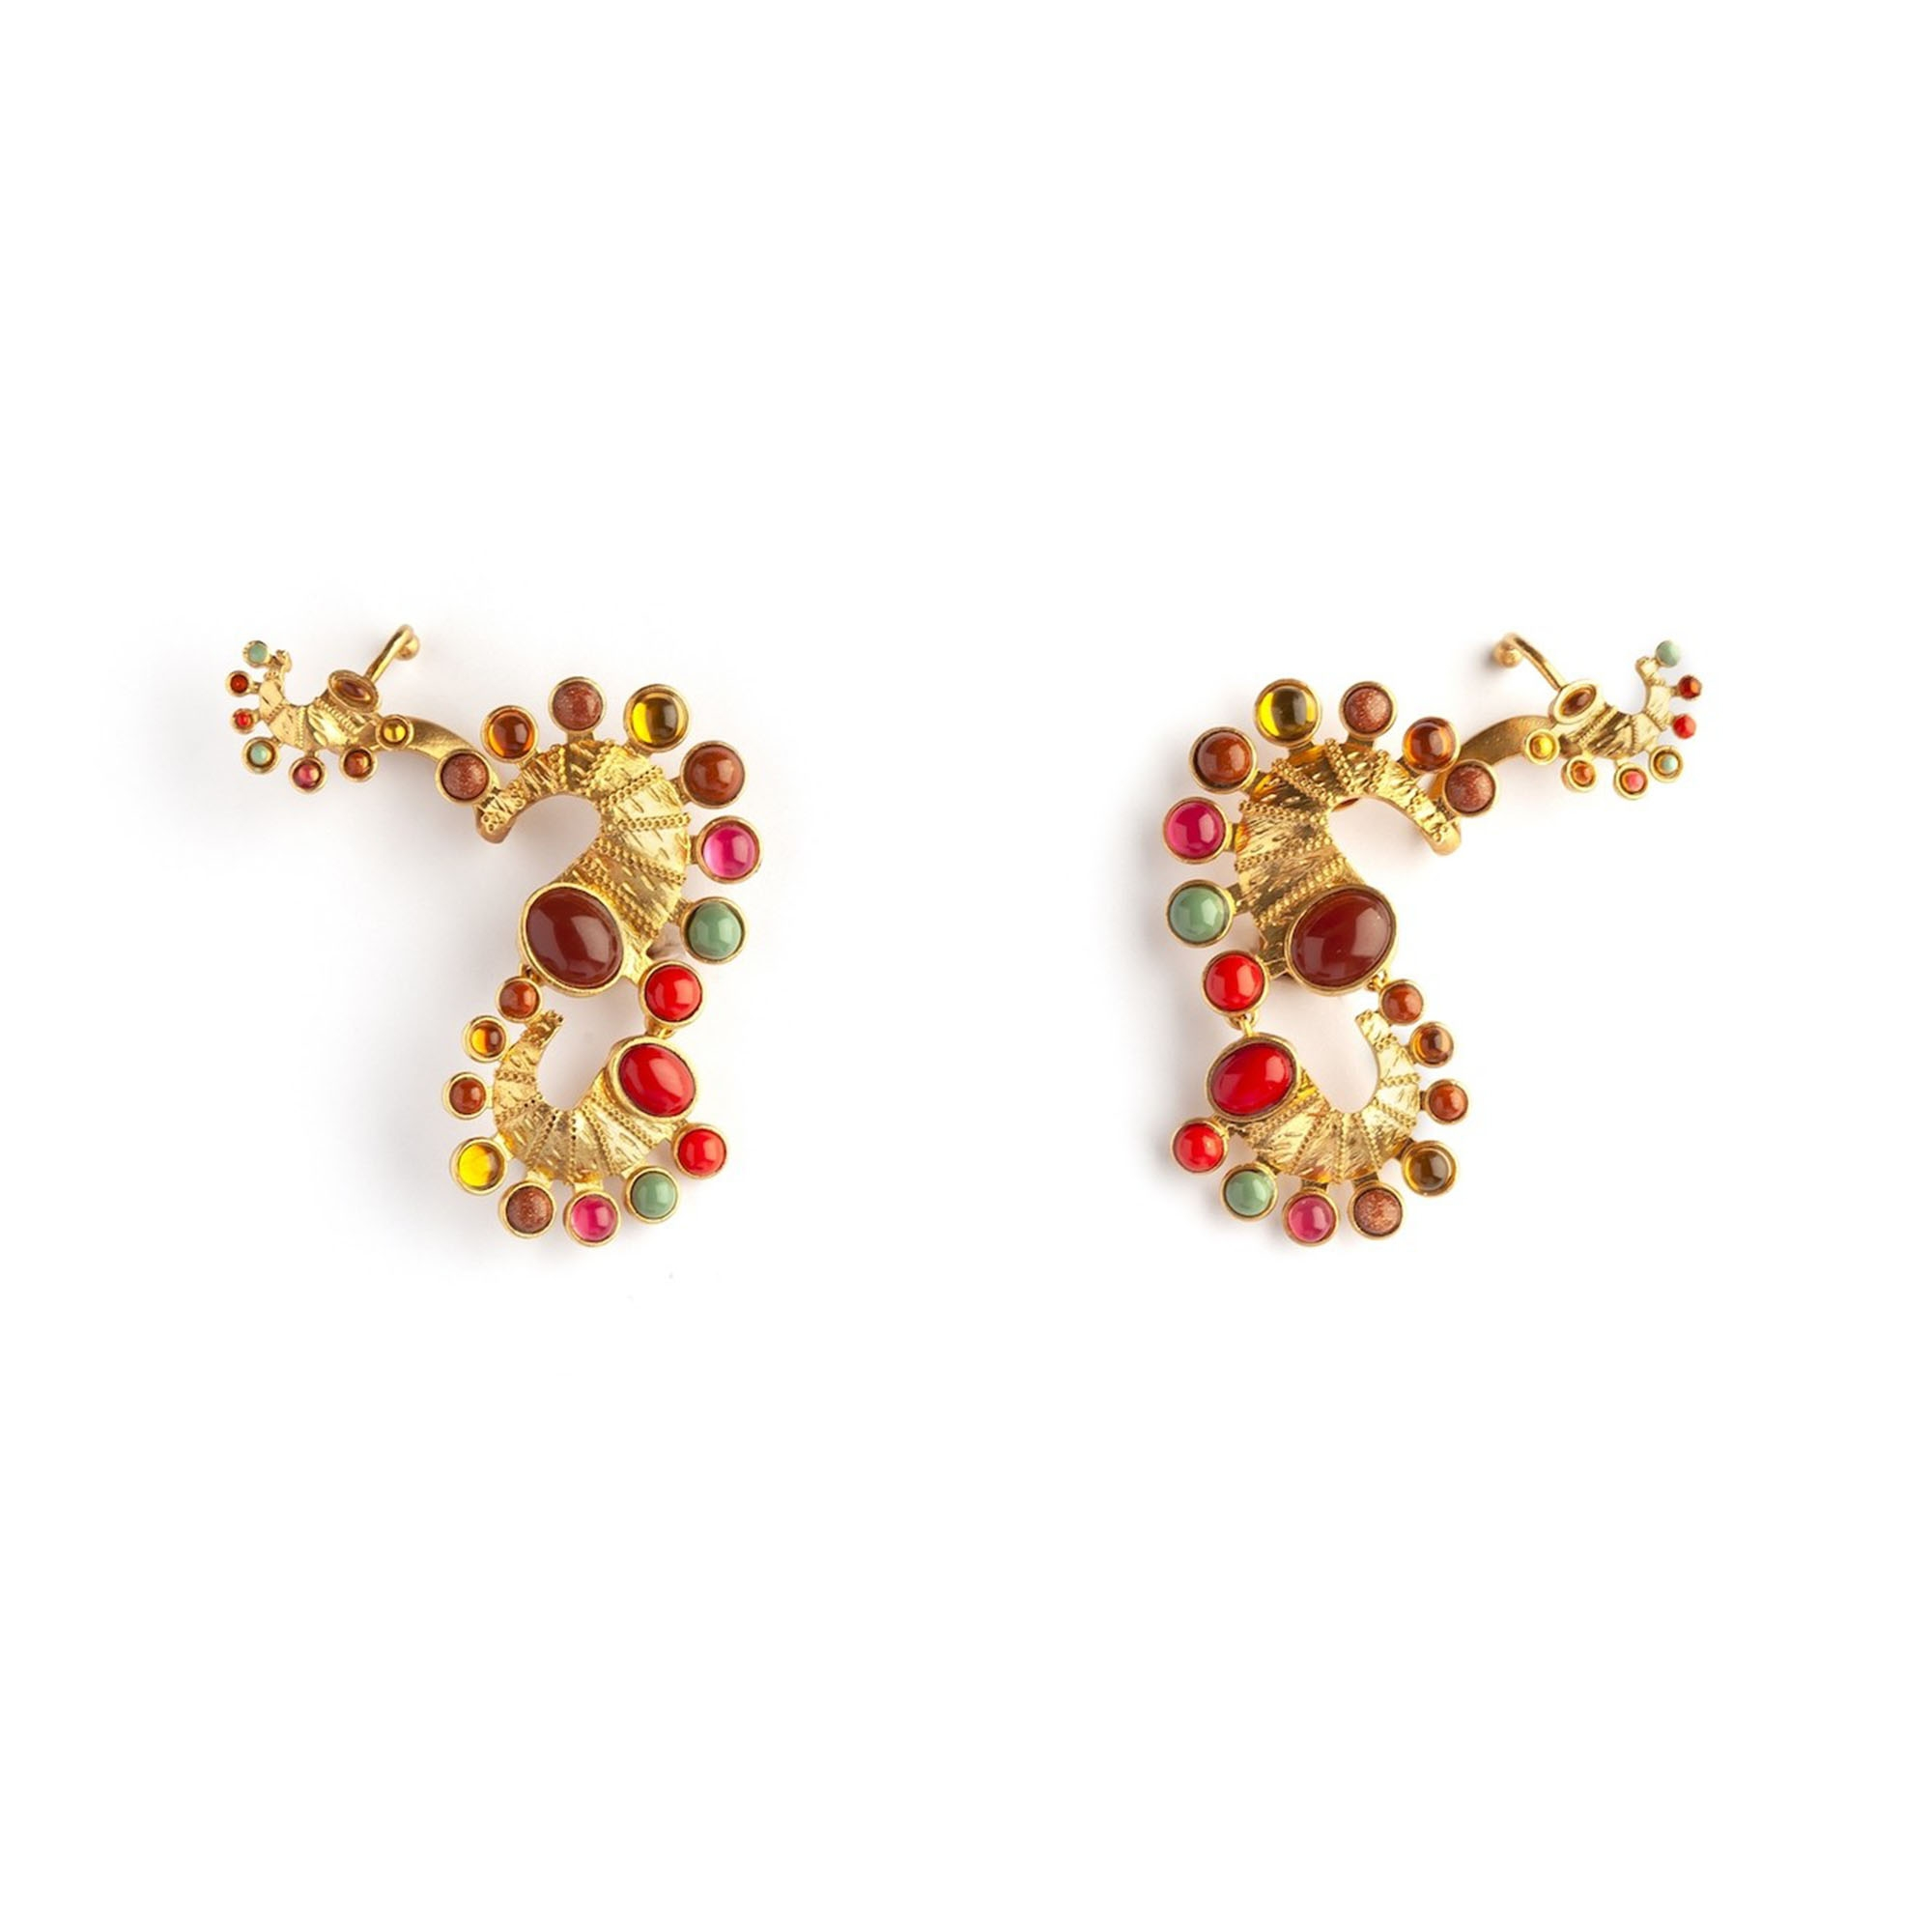 Seahorse Short Luxury Earrings by Sonia Petroff on curated-crowd.com